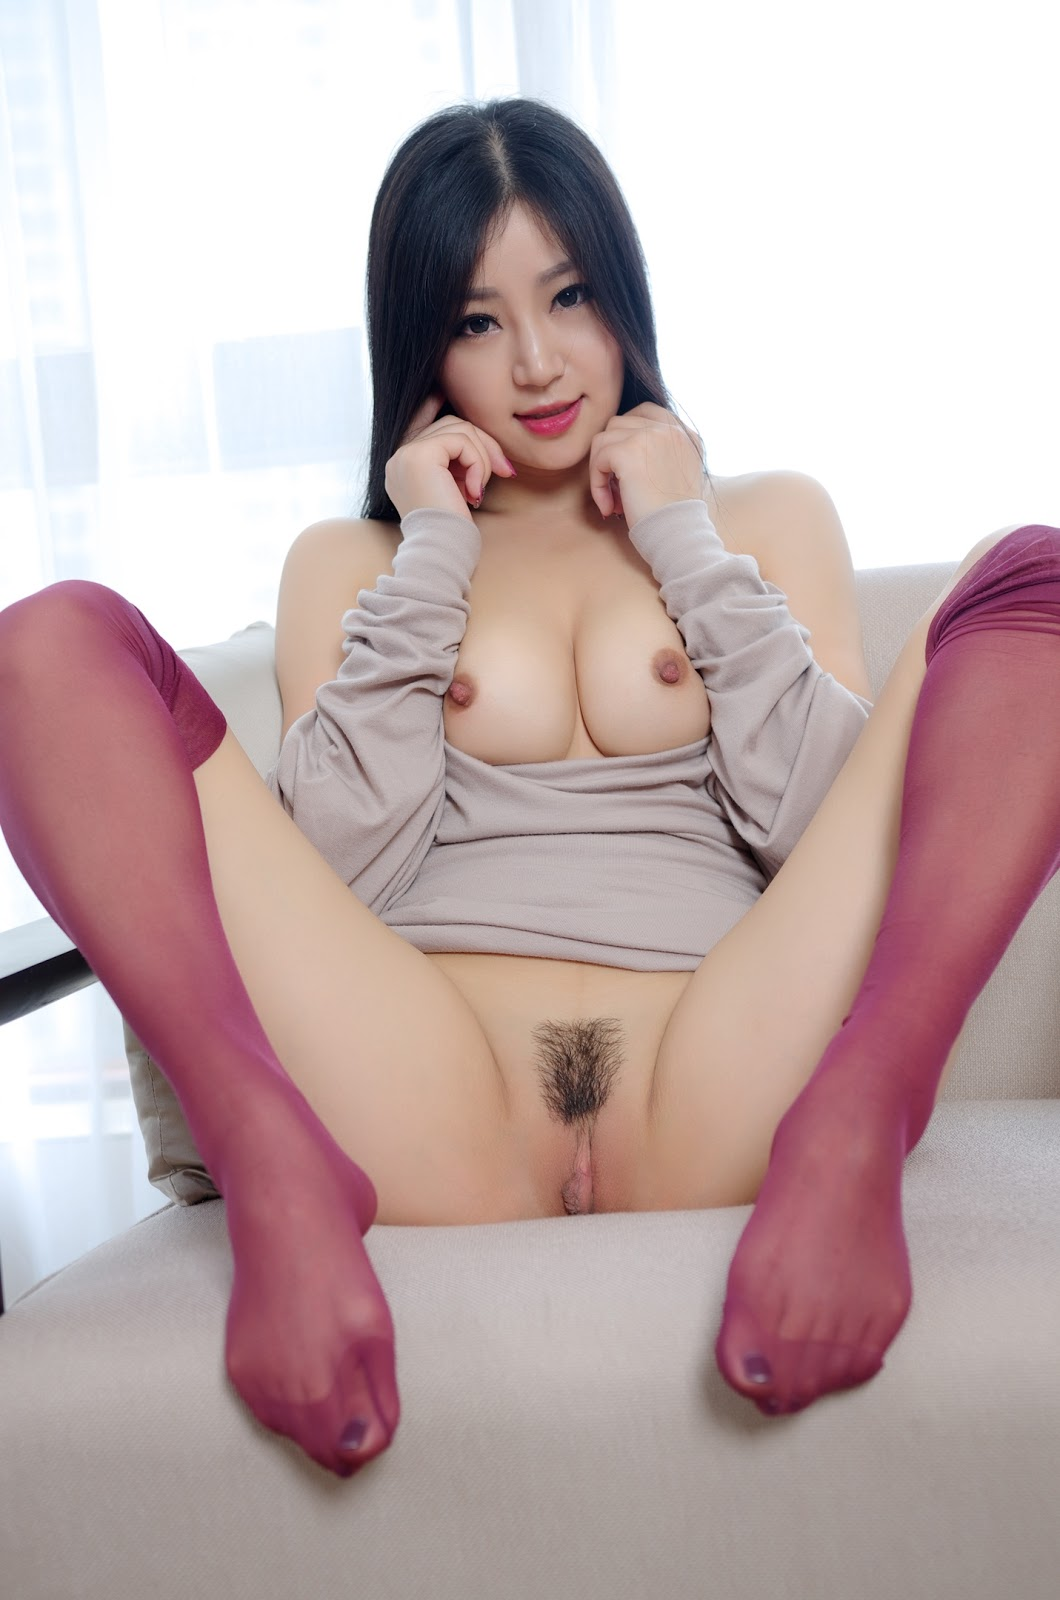 MVDTuREFK7s - Cute nude asian model show sexy pussy 2020